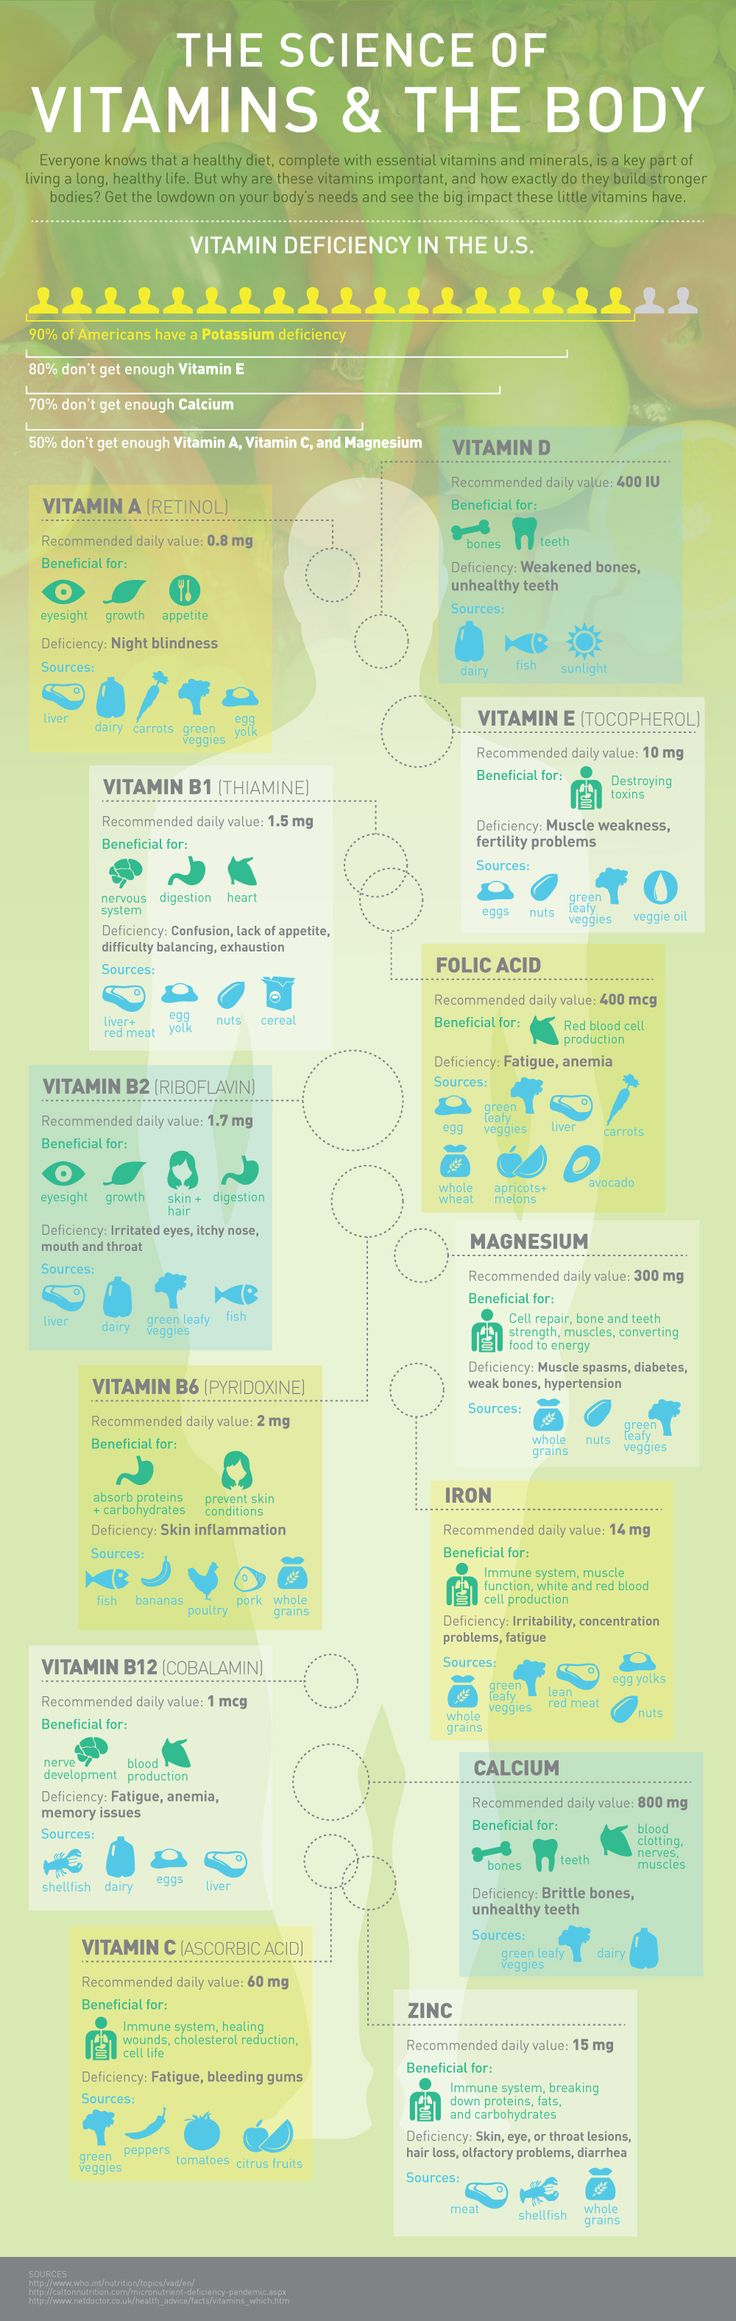 vitamins and our bodies.